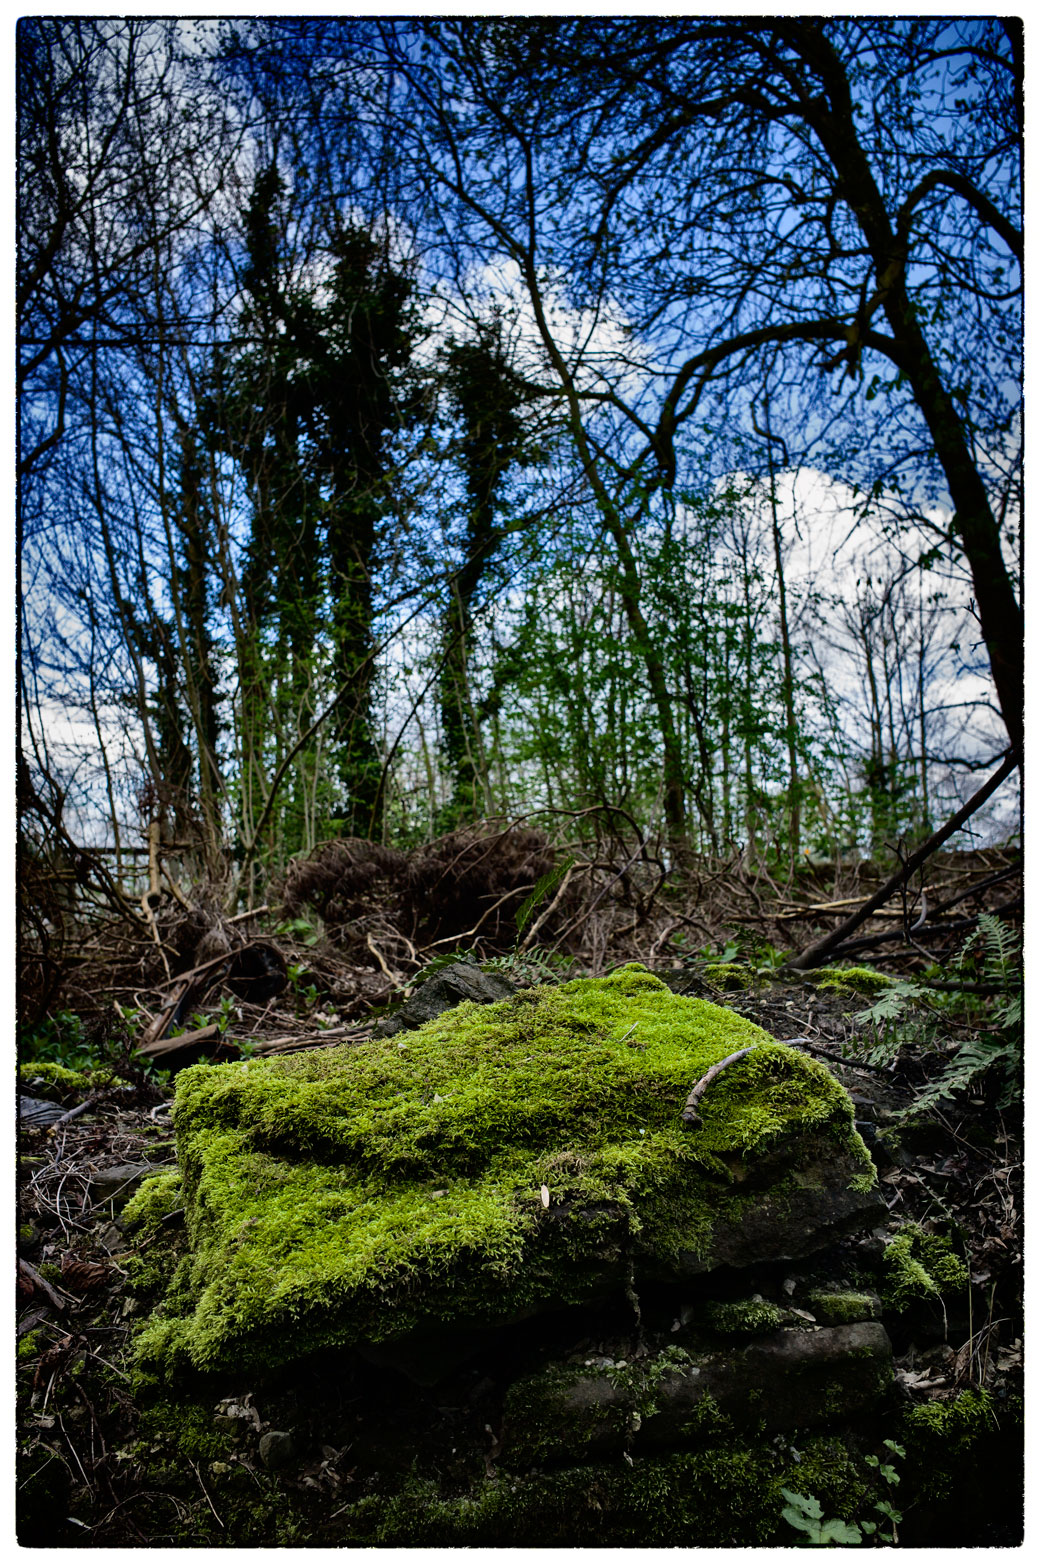 Moss covered stone.